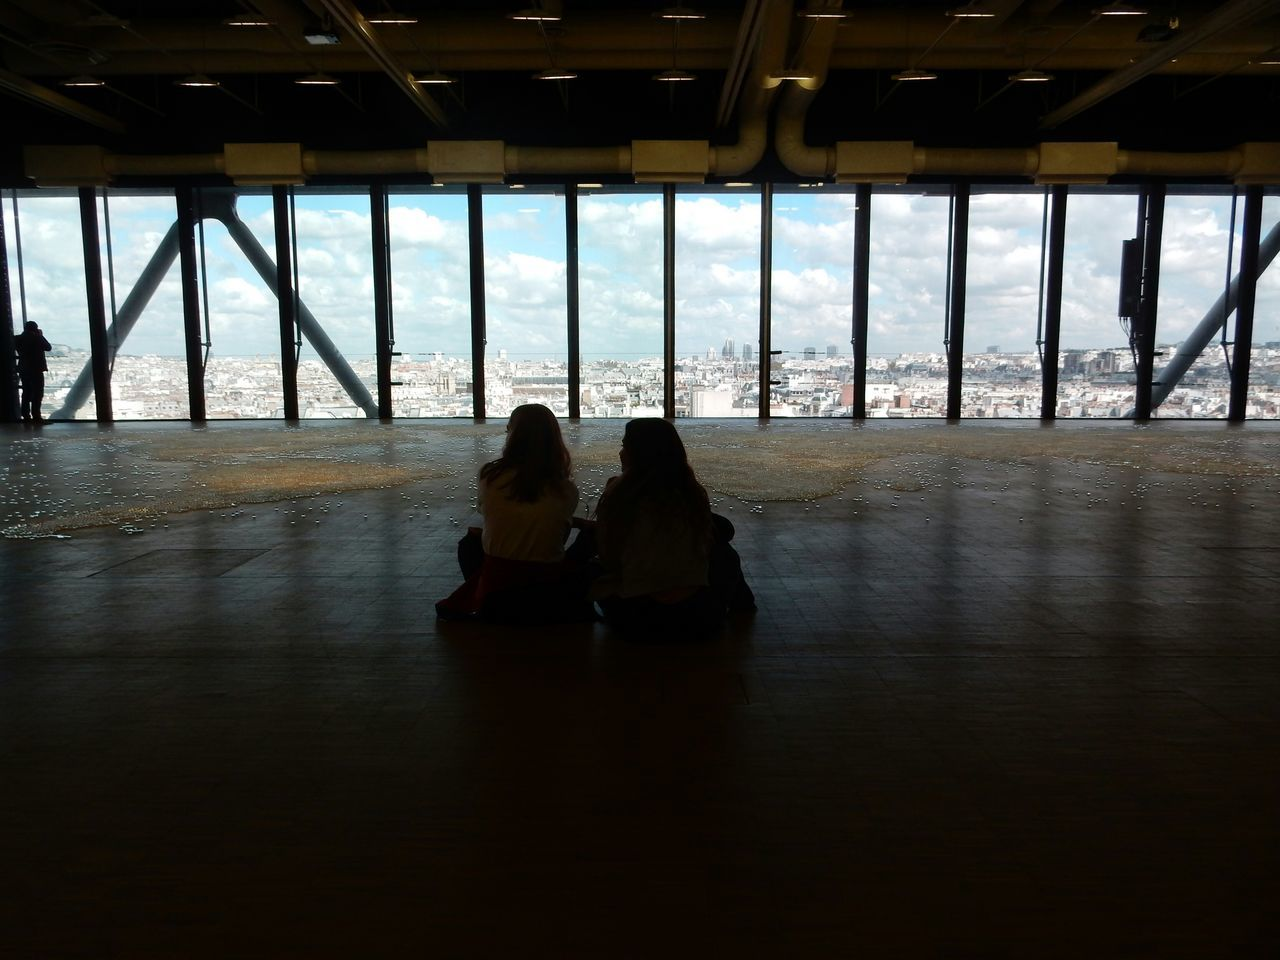 indoors, real people, window, sitting, women, rear view, lifestyles, day, built structure, togetherness, architecture, leisure activity, two people, friendship, water, men, sky, sea, nature, people